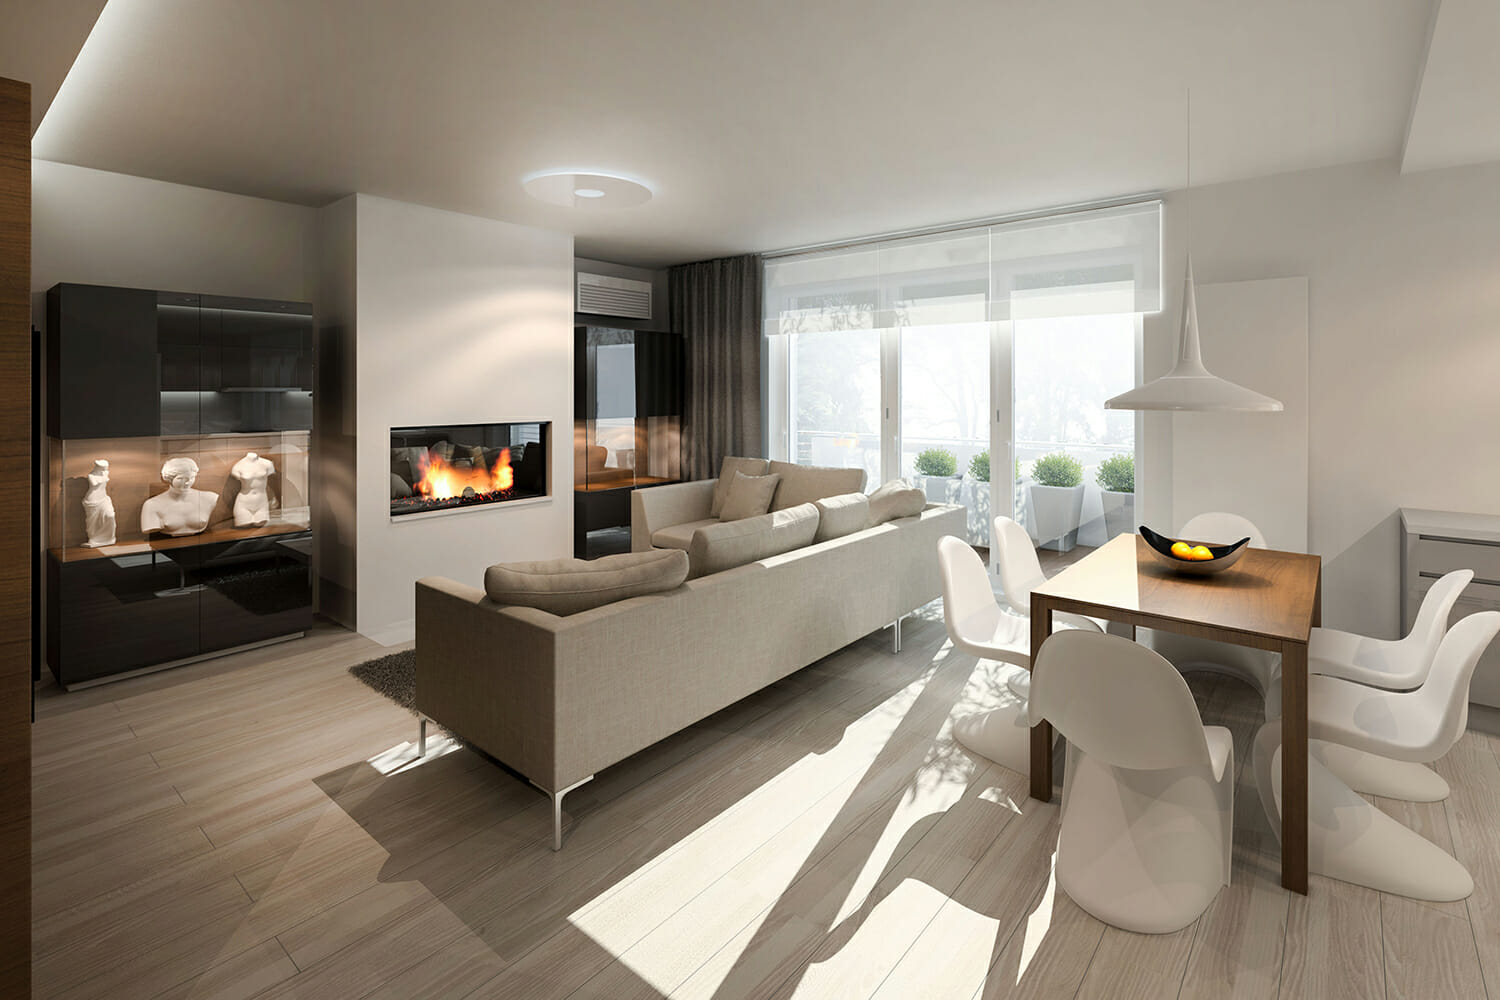 Apartment Renovation Project in Battersea